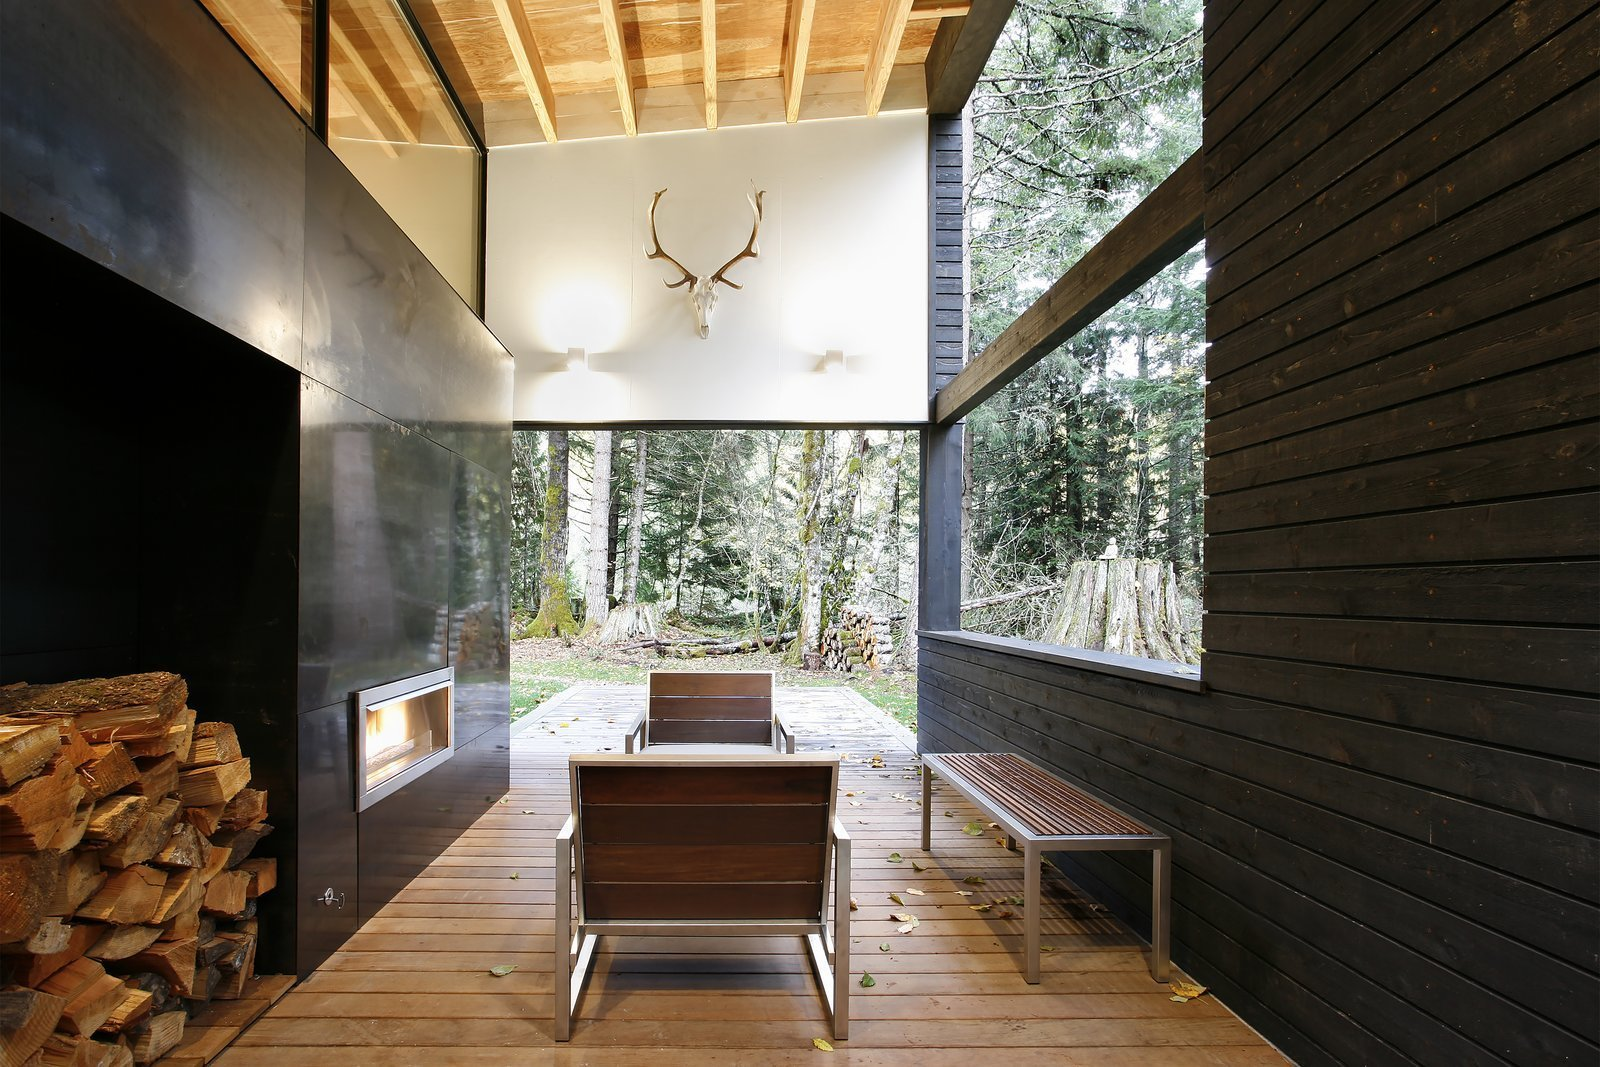 Living, Bench, Chair, Wood Burning, Ribbon, Medium Hardwood, and Wall In Greenwater, Washington, a courtyard house on a river was designed with a steel-clad fireplace mass that separates the living room from a covered outdoor patio.  Best Living Bench Ribbon Photos from 10 Modern Fireplaces That Make For Inviting Interiors